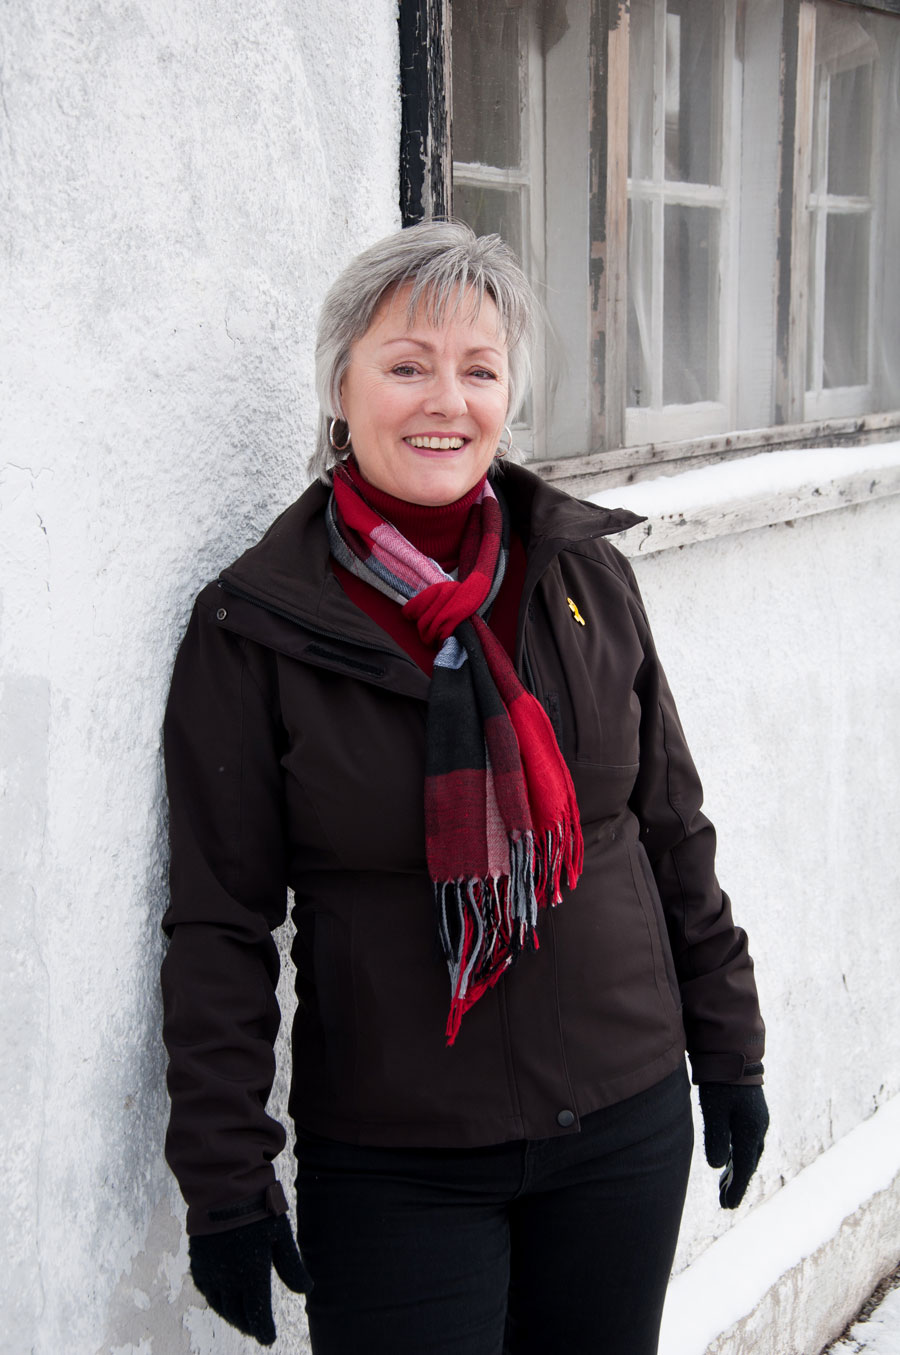 woman in black jacket, plaid scarf, short grey hair, leans against white wall outdoors